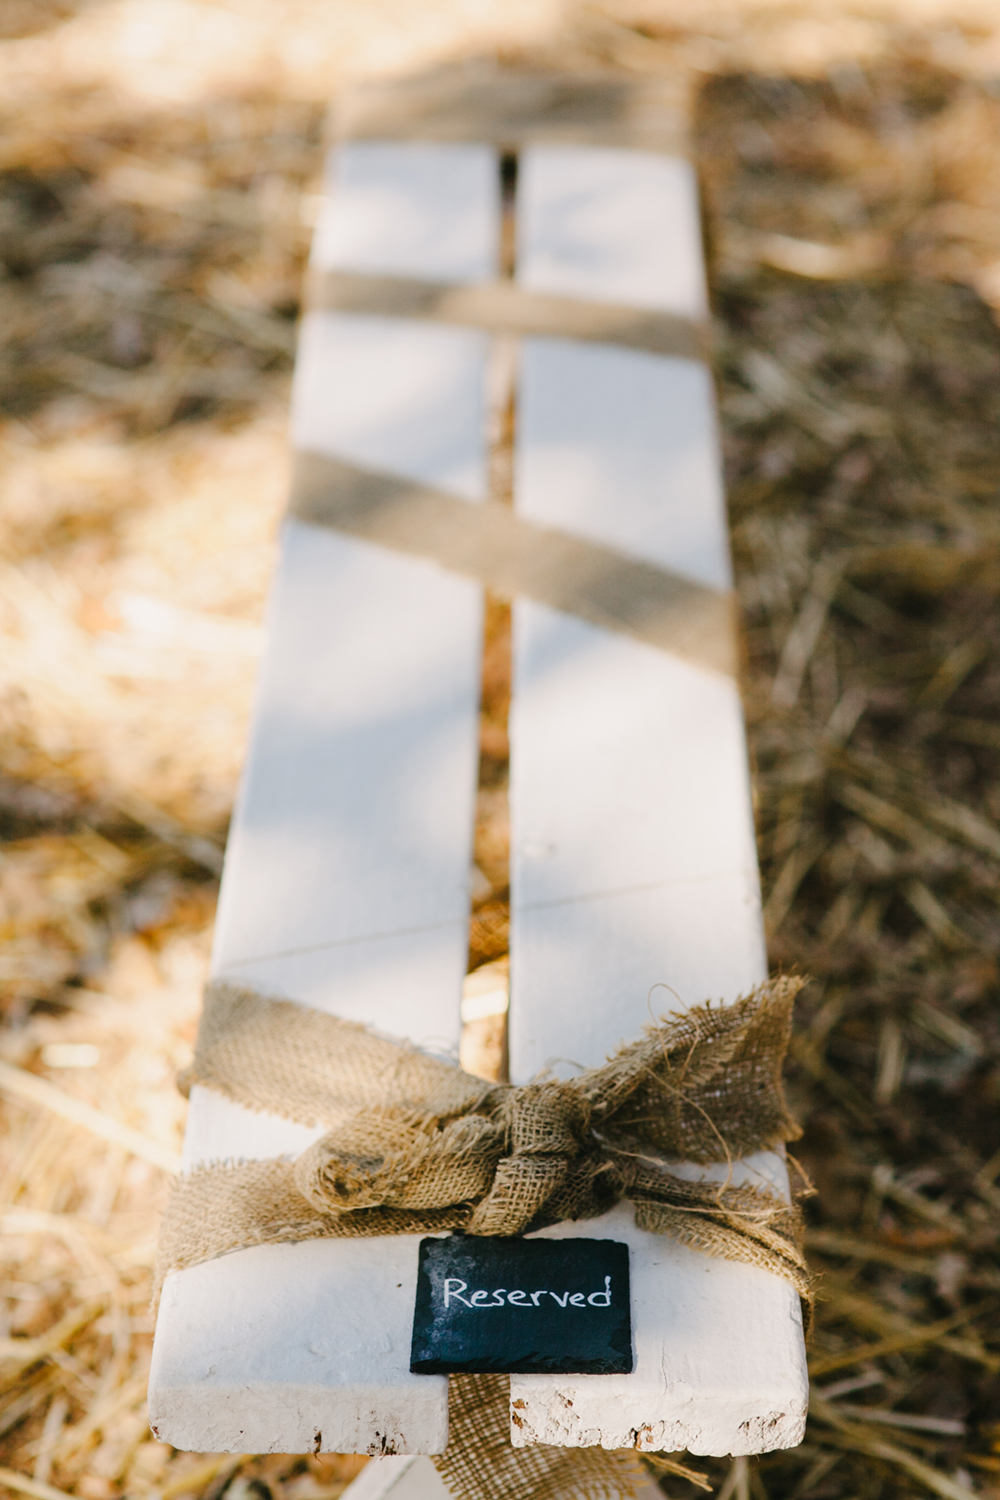 Diablo-Ranch-Wedding-Details-09.JPG